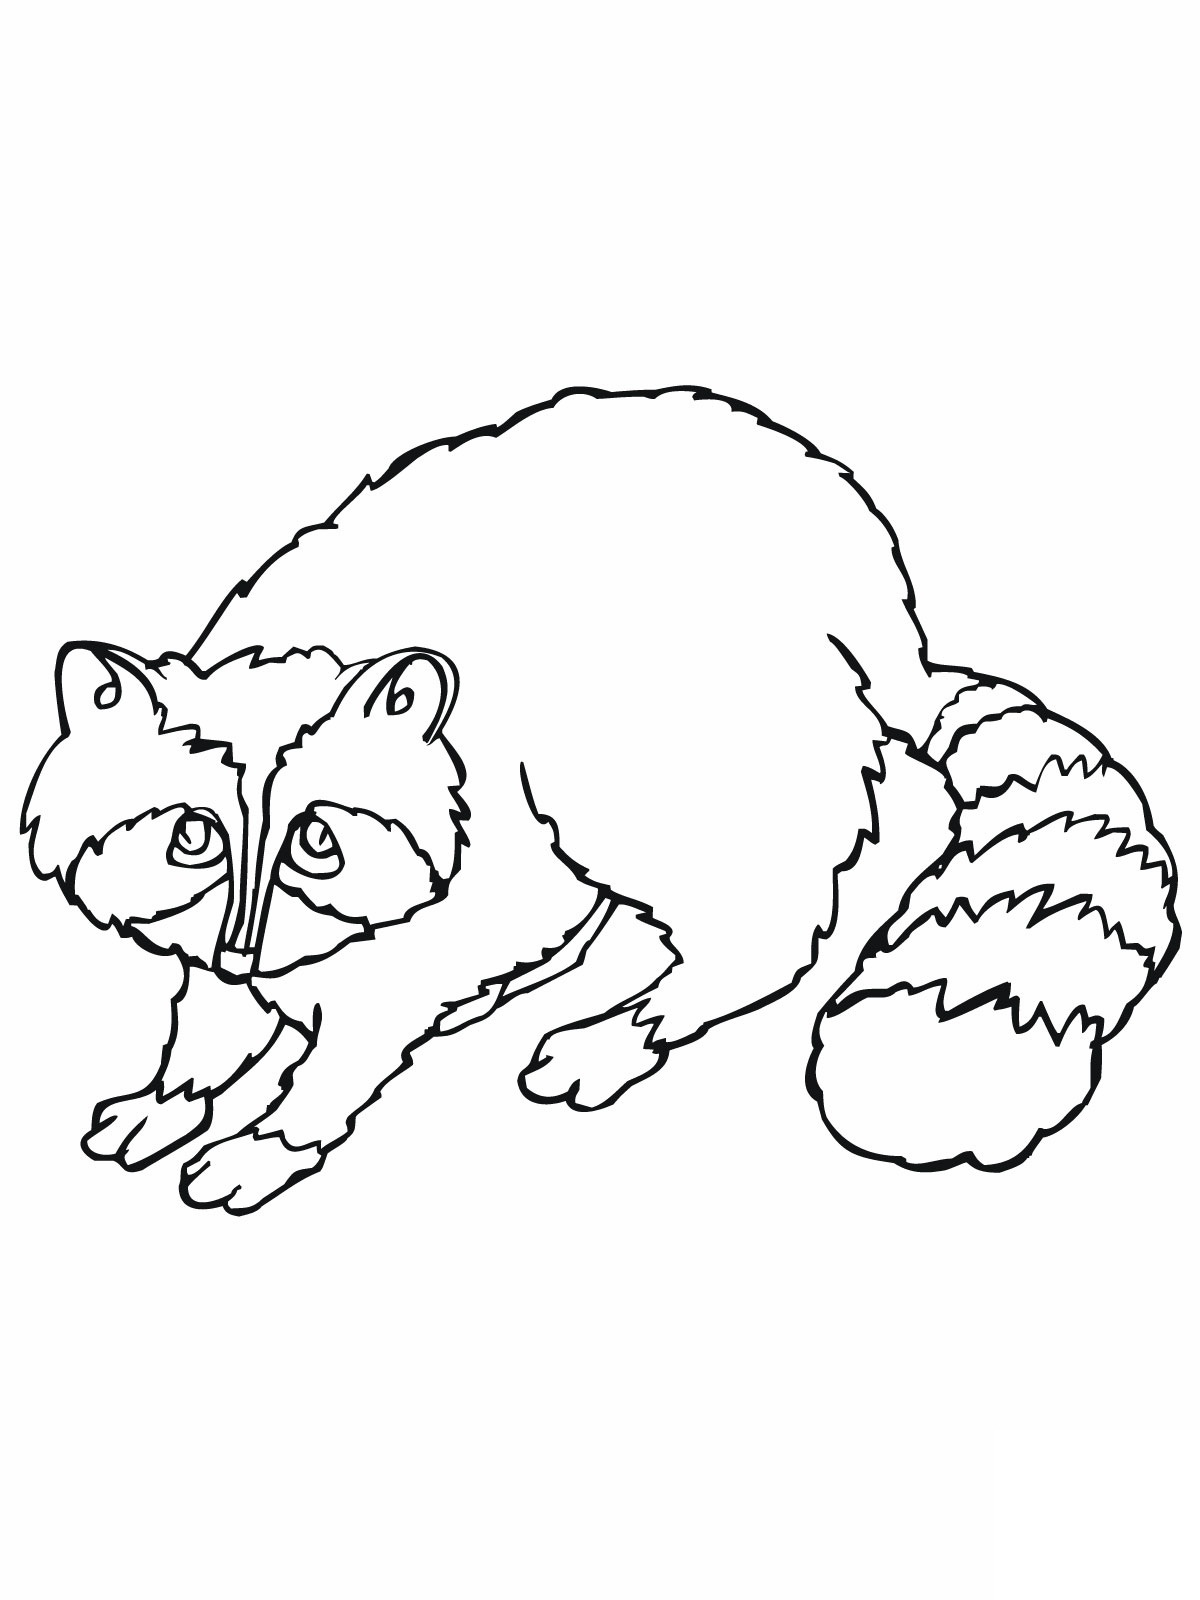 printable coloring pages com - photo#3